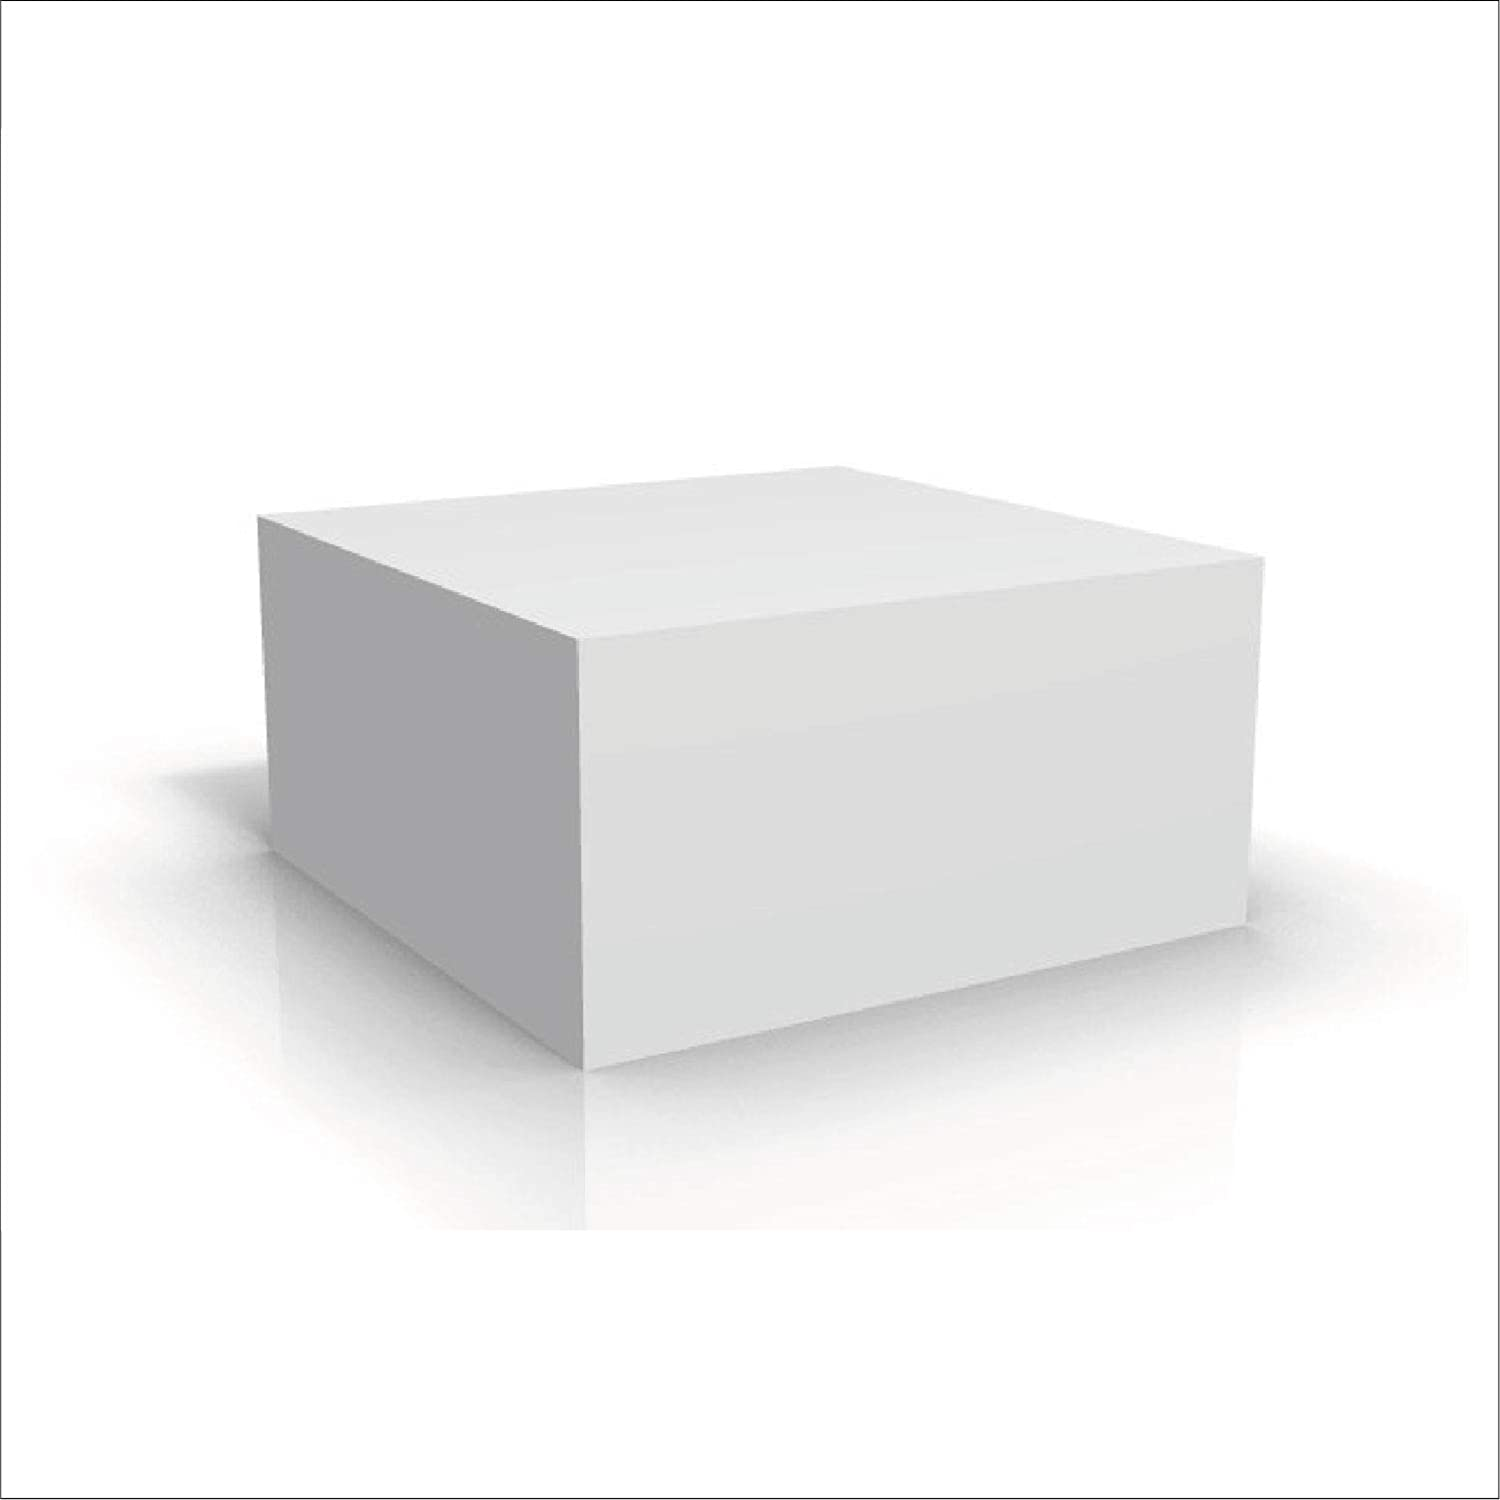 12pcs 8x8x4 Inches White Bakery Boxes with Cake Box for Pastries, Cookies, Pie, Cupcakes,Pizza, Lunch, Picnic (8x8x4)